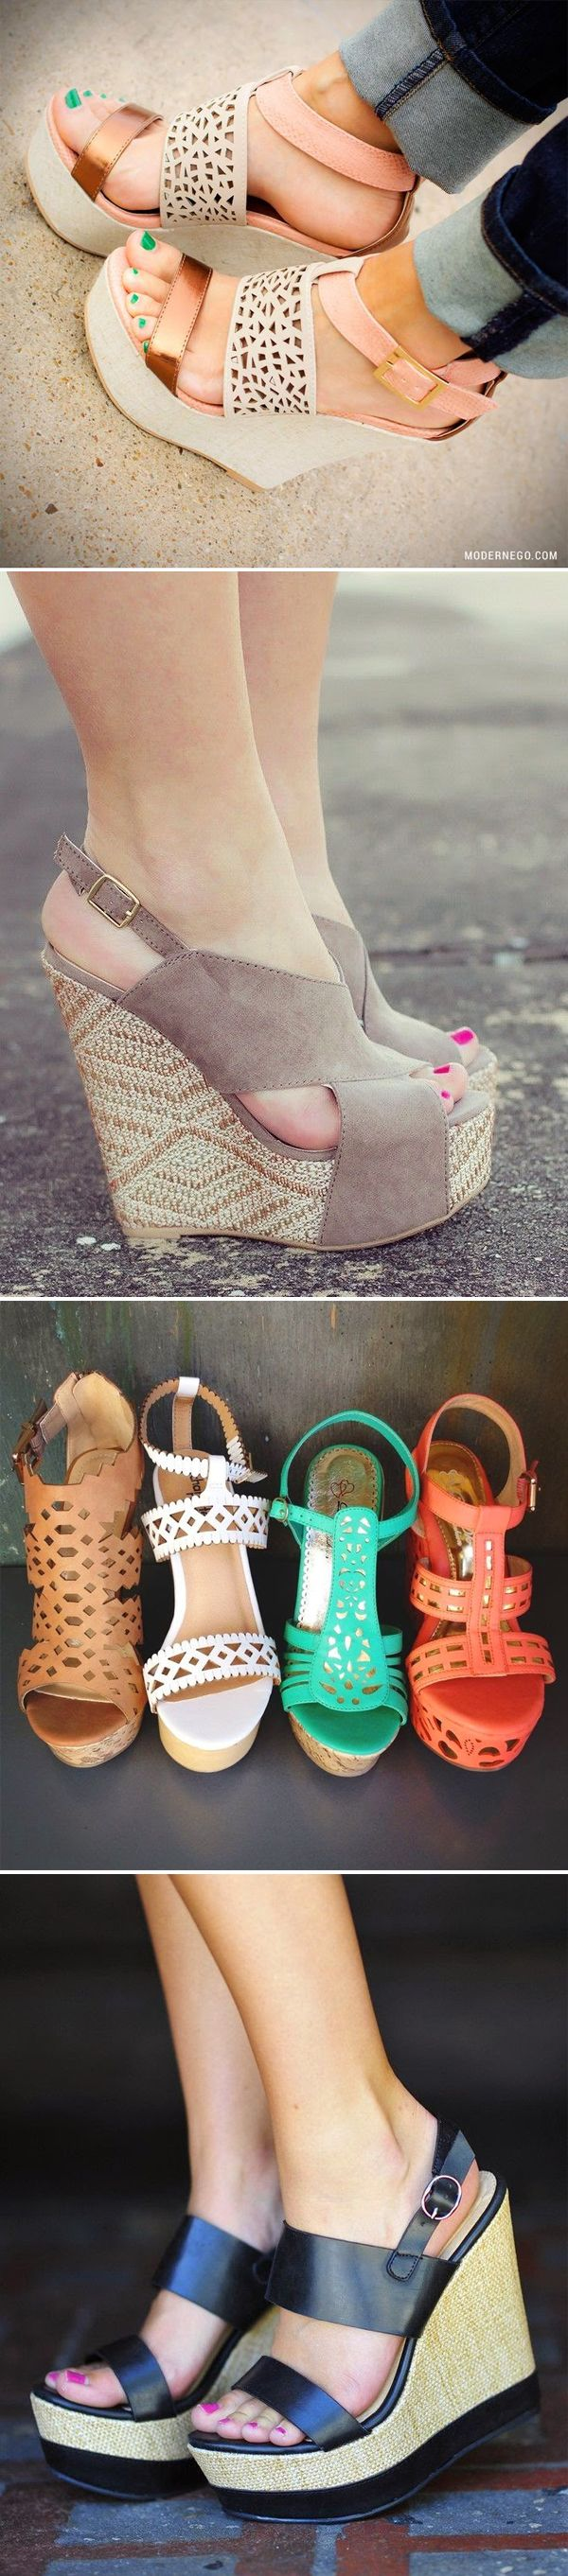 Wonderful Wedges! Click through to see my favorite wedges and sandals for Spring and Summe/Dorothy Johnson